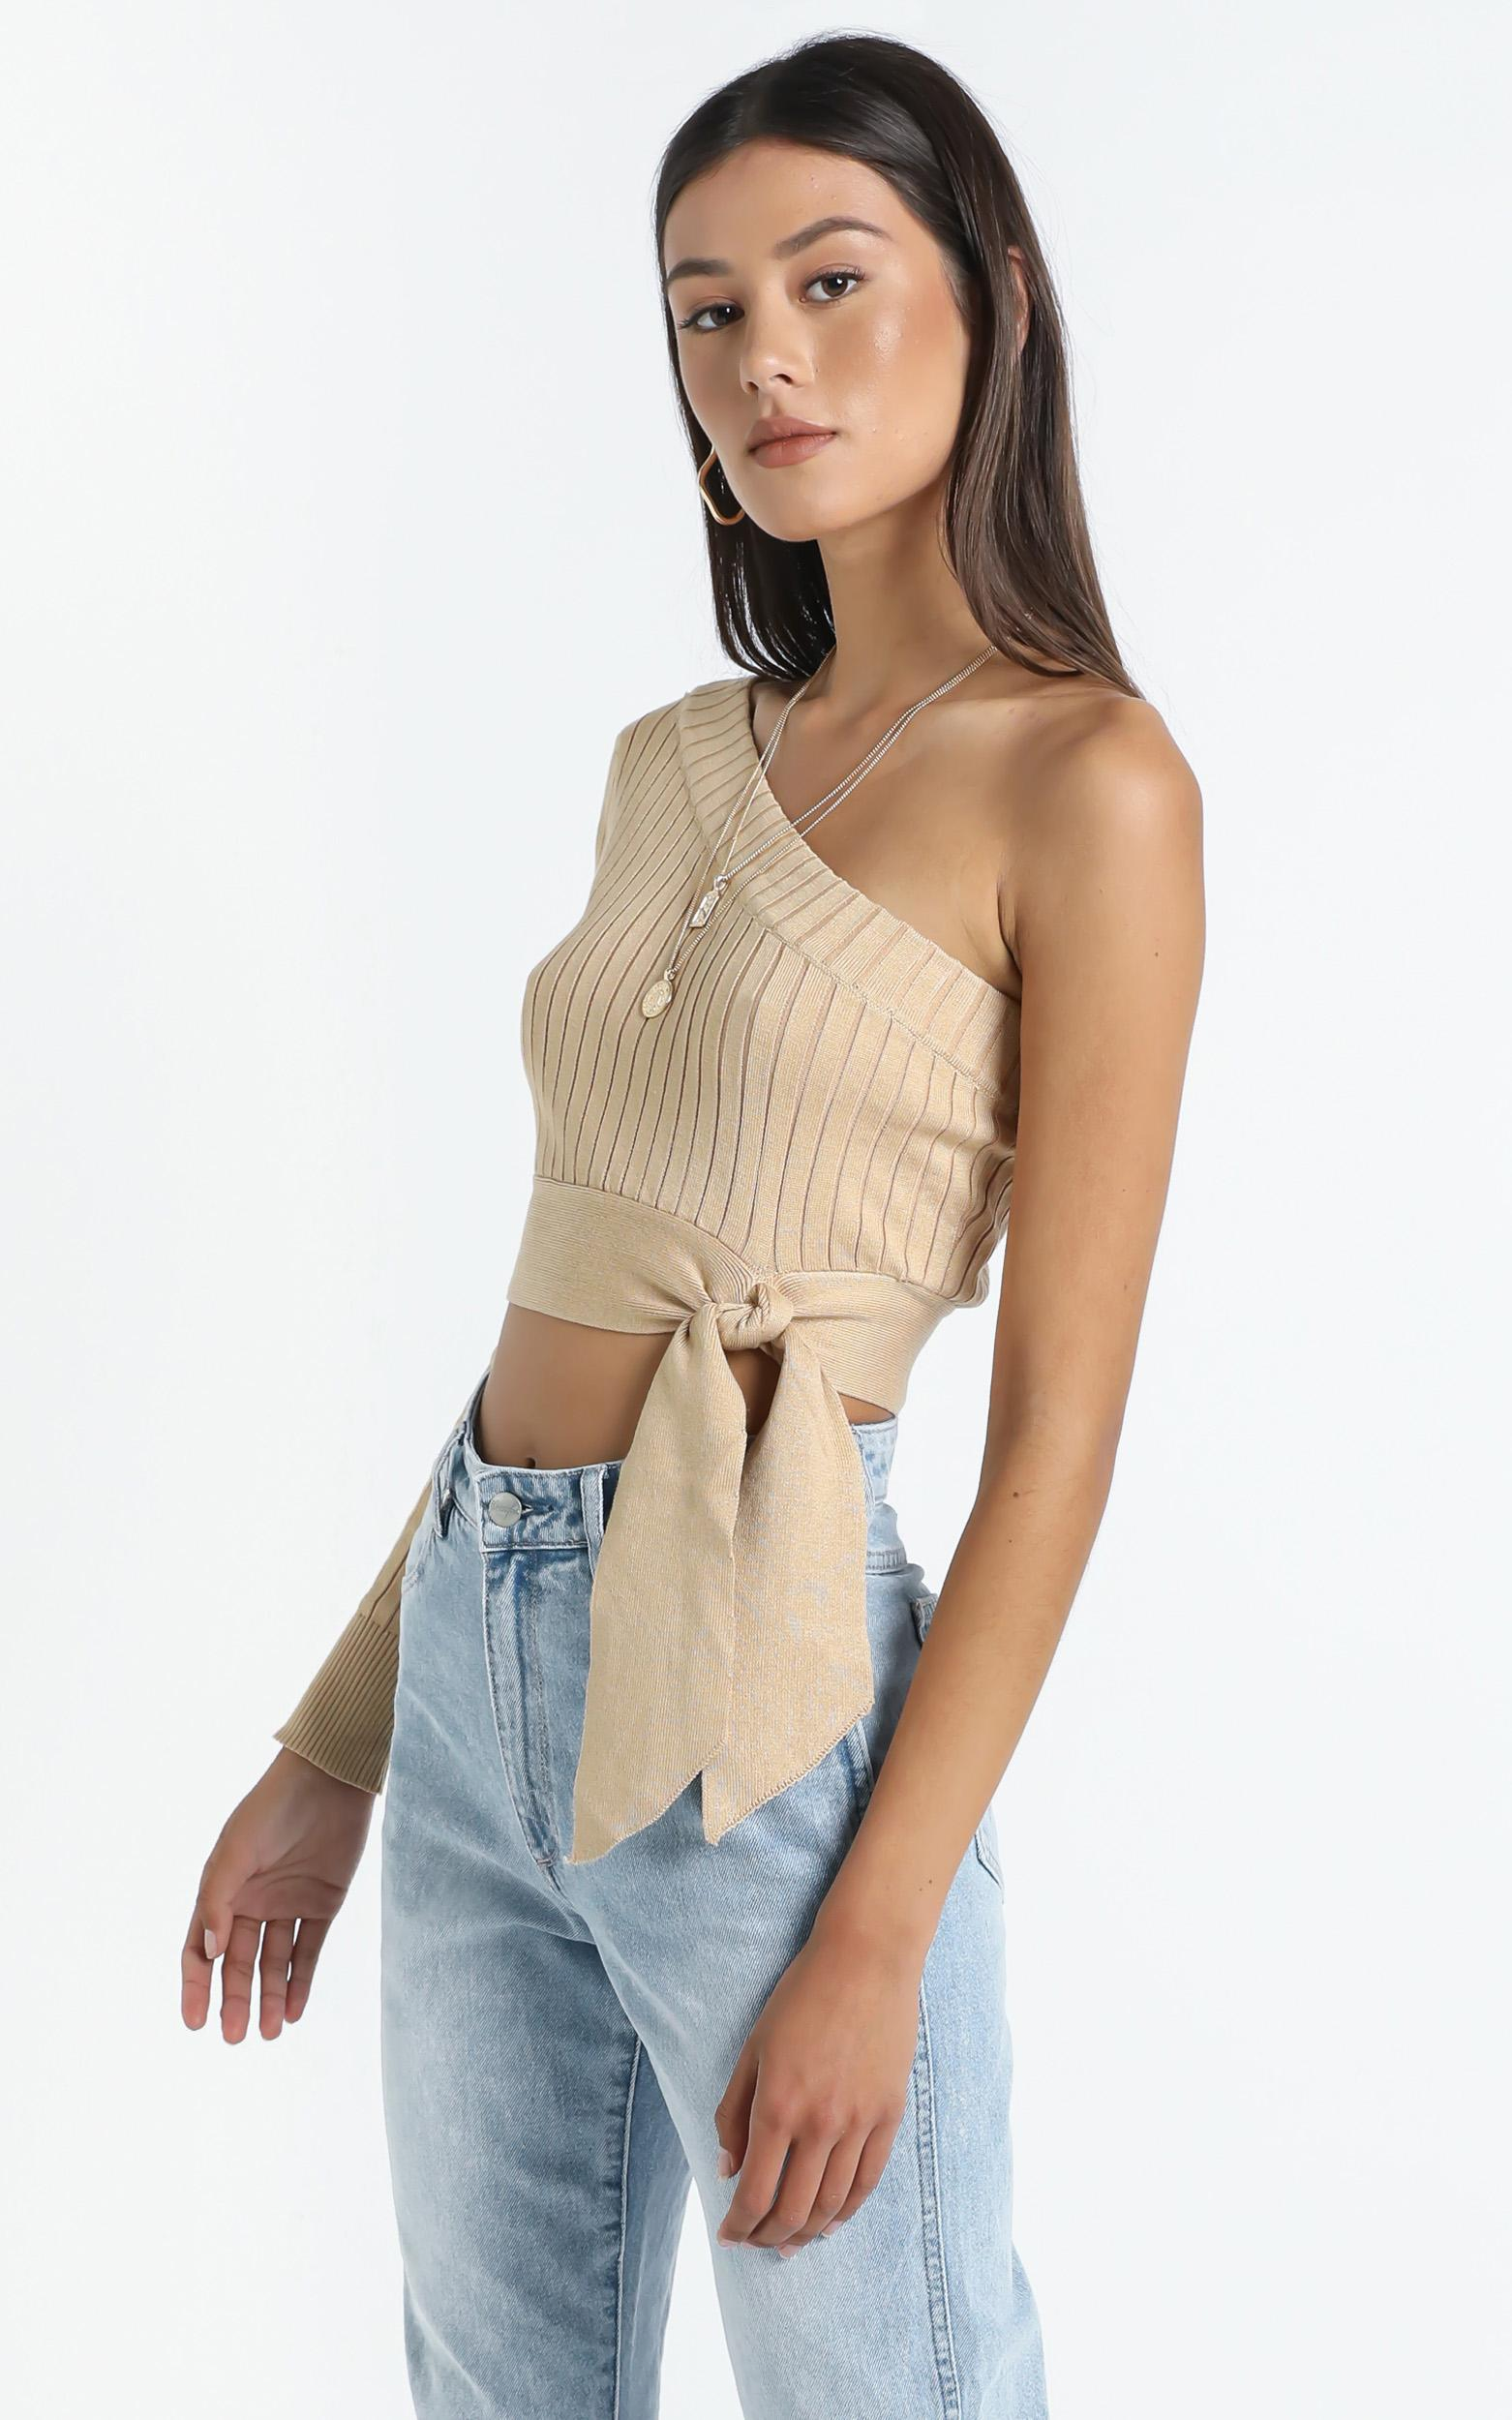 KAYDEE TOP IN BEIGE $35.00 was $49.95